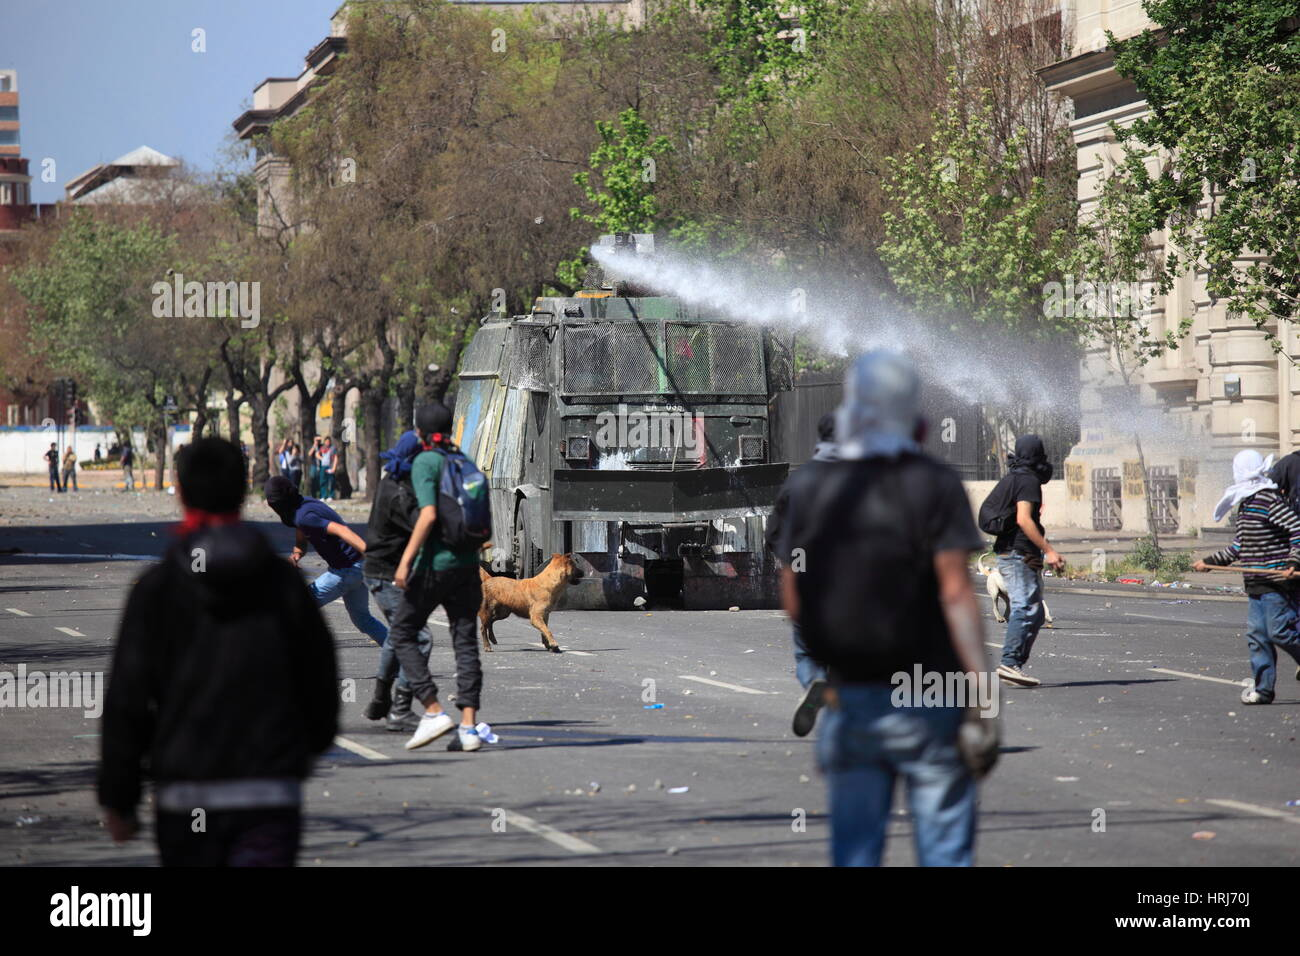 Chilean police water cannon disperse protesters,during a student strike in Santiago's Downtown, Chile. - Stock Image